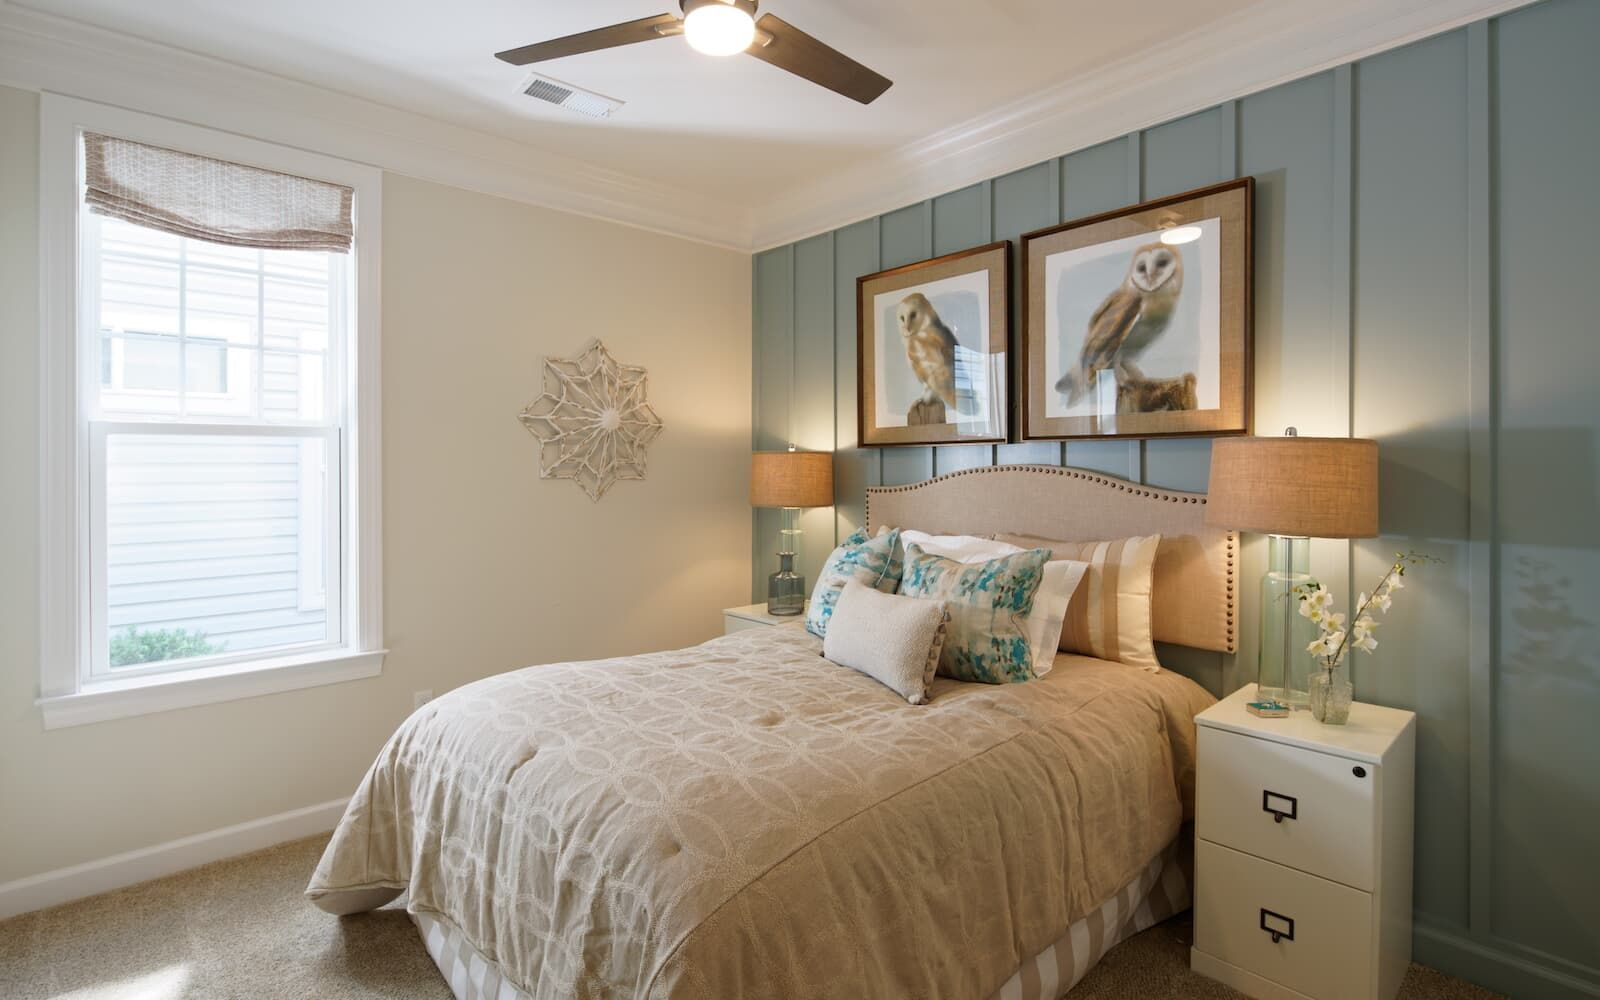 Bedroom featured in the Picasso By Brookfield Residential in Sussex, DE